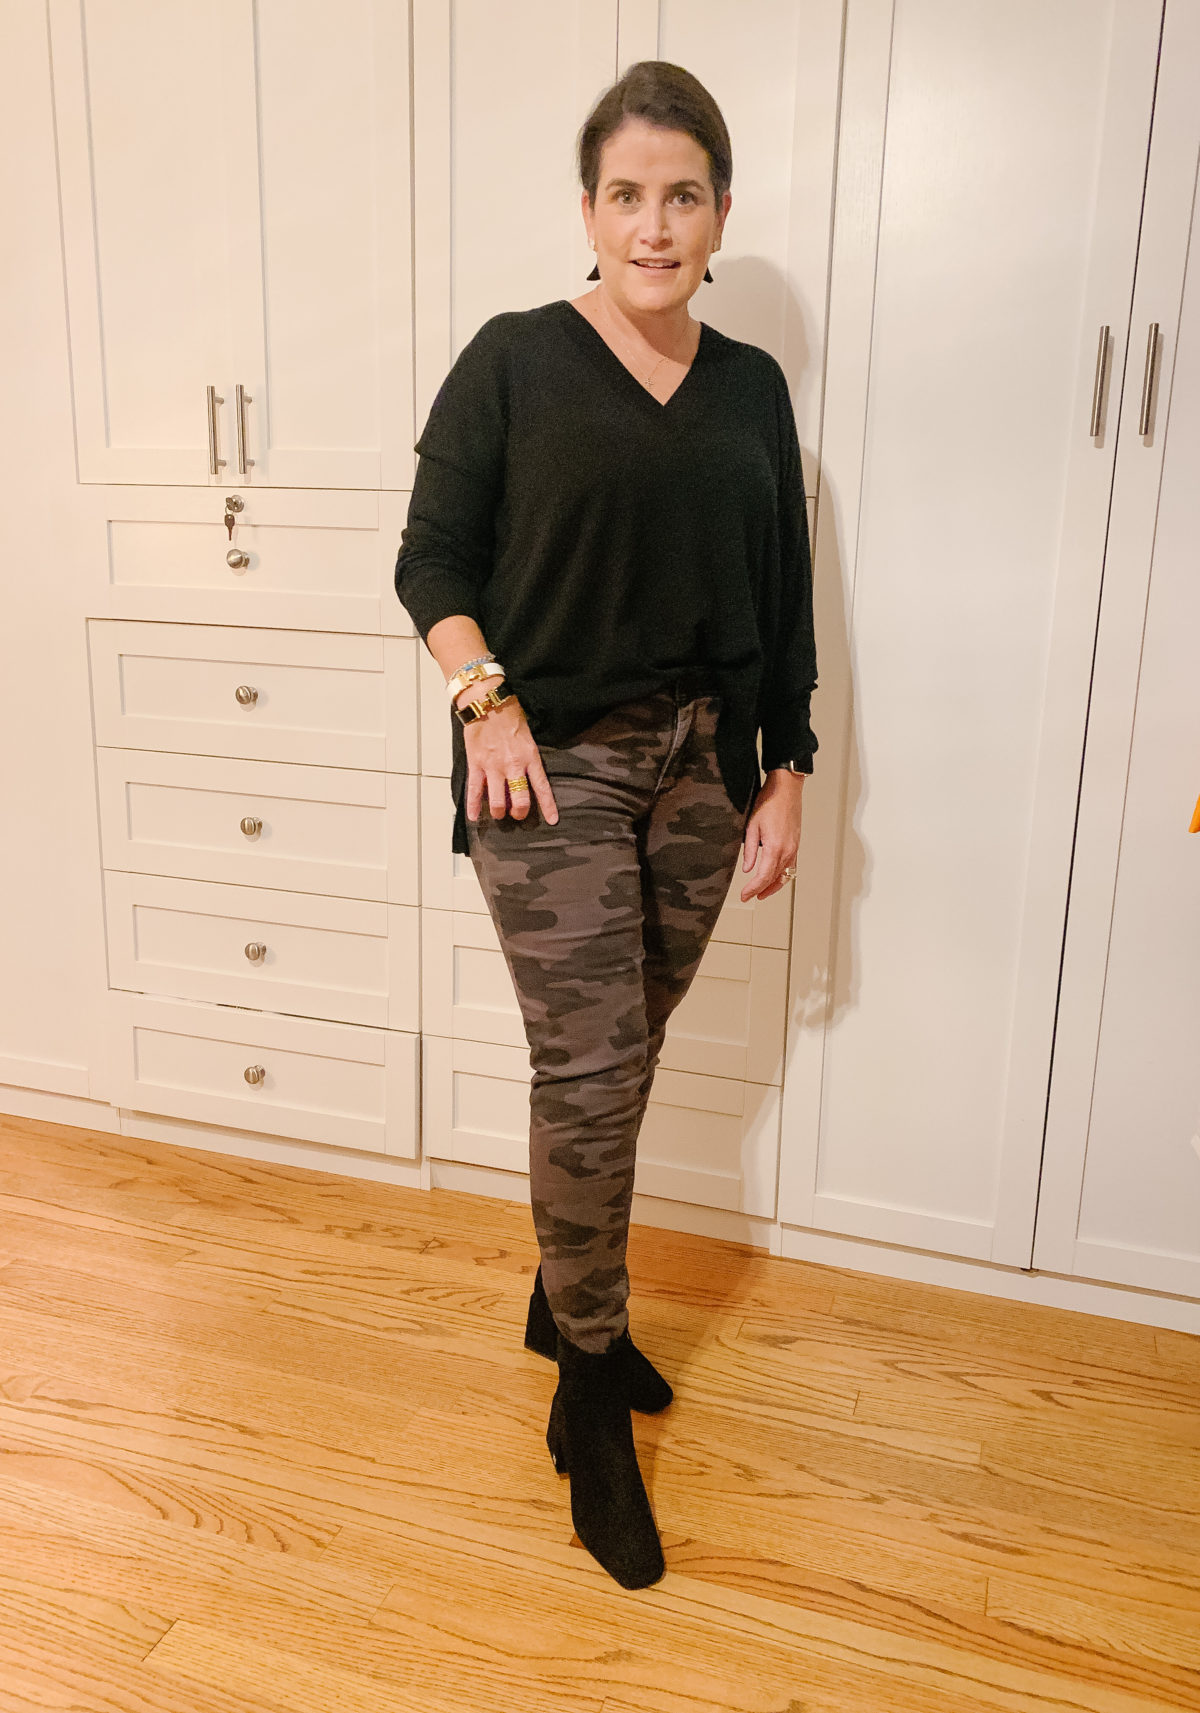 Nordstrom Sale, What Ali-Shaun Bought, Black V-Neck Sweater, Camo Pants, Booties